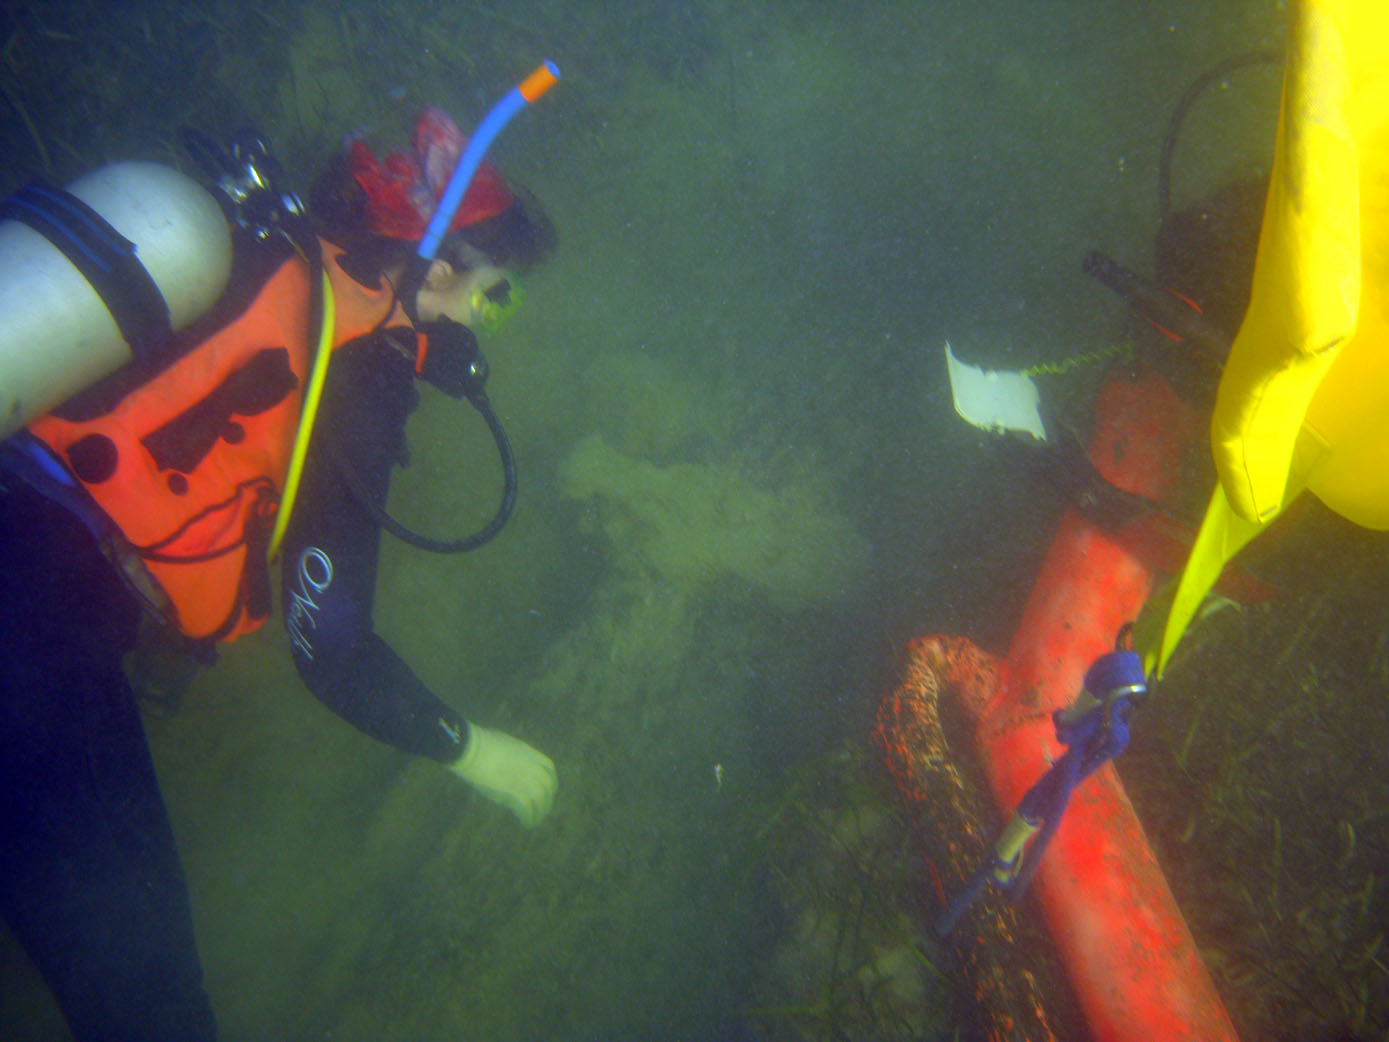 Maritime archaeologist Nikki investigating the recently found rudder from The Tile Wreck